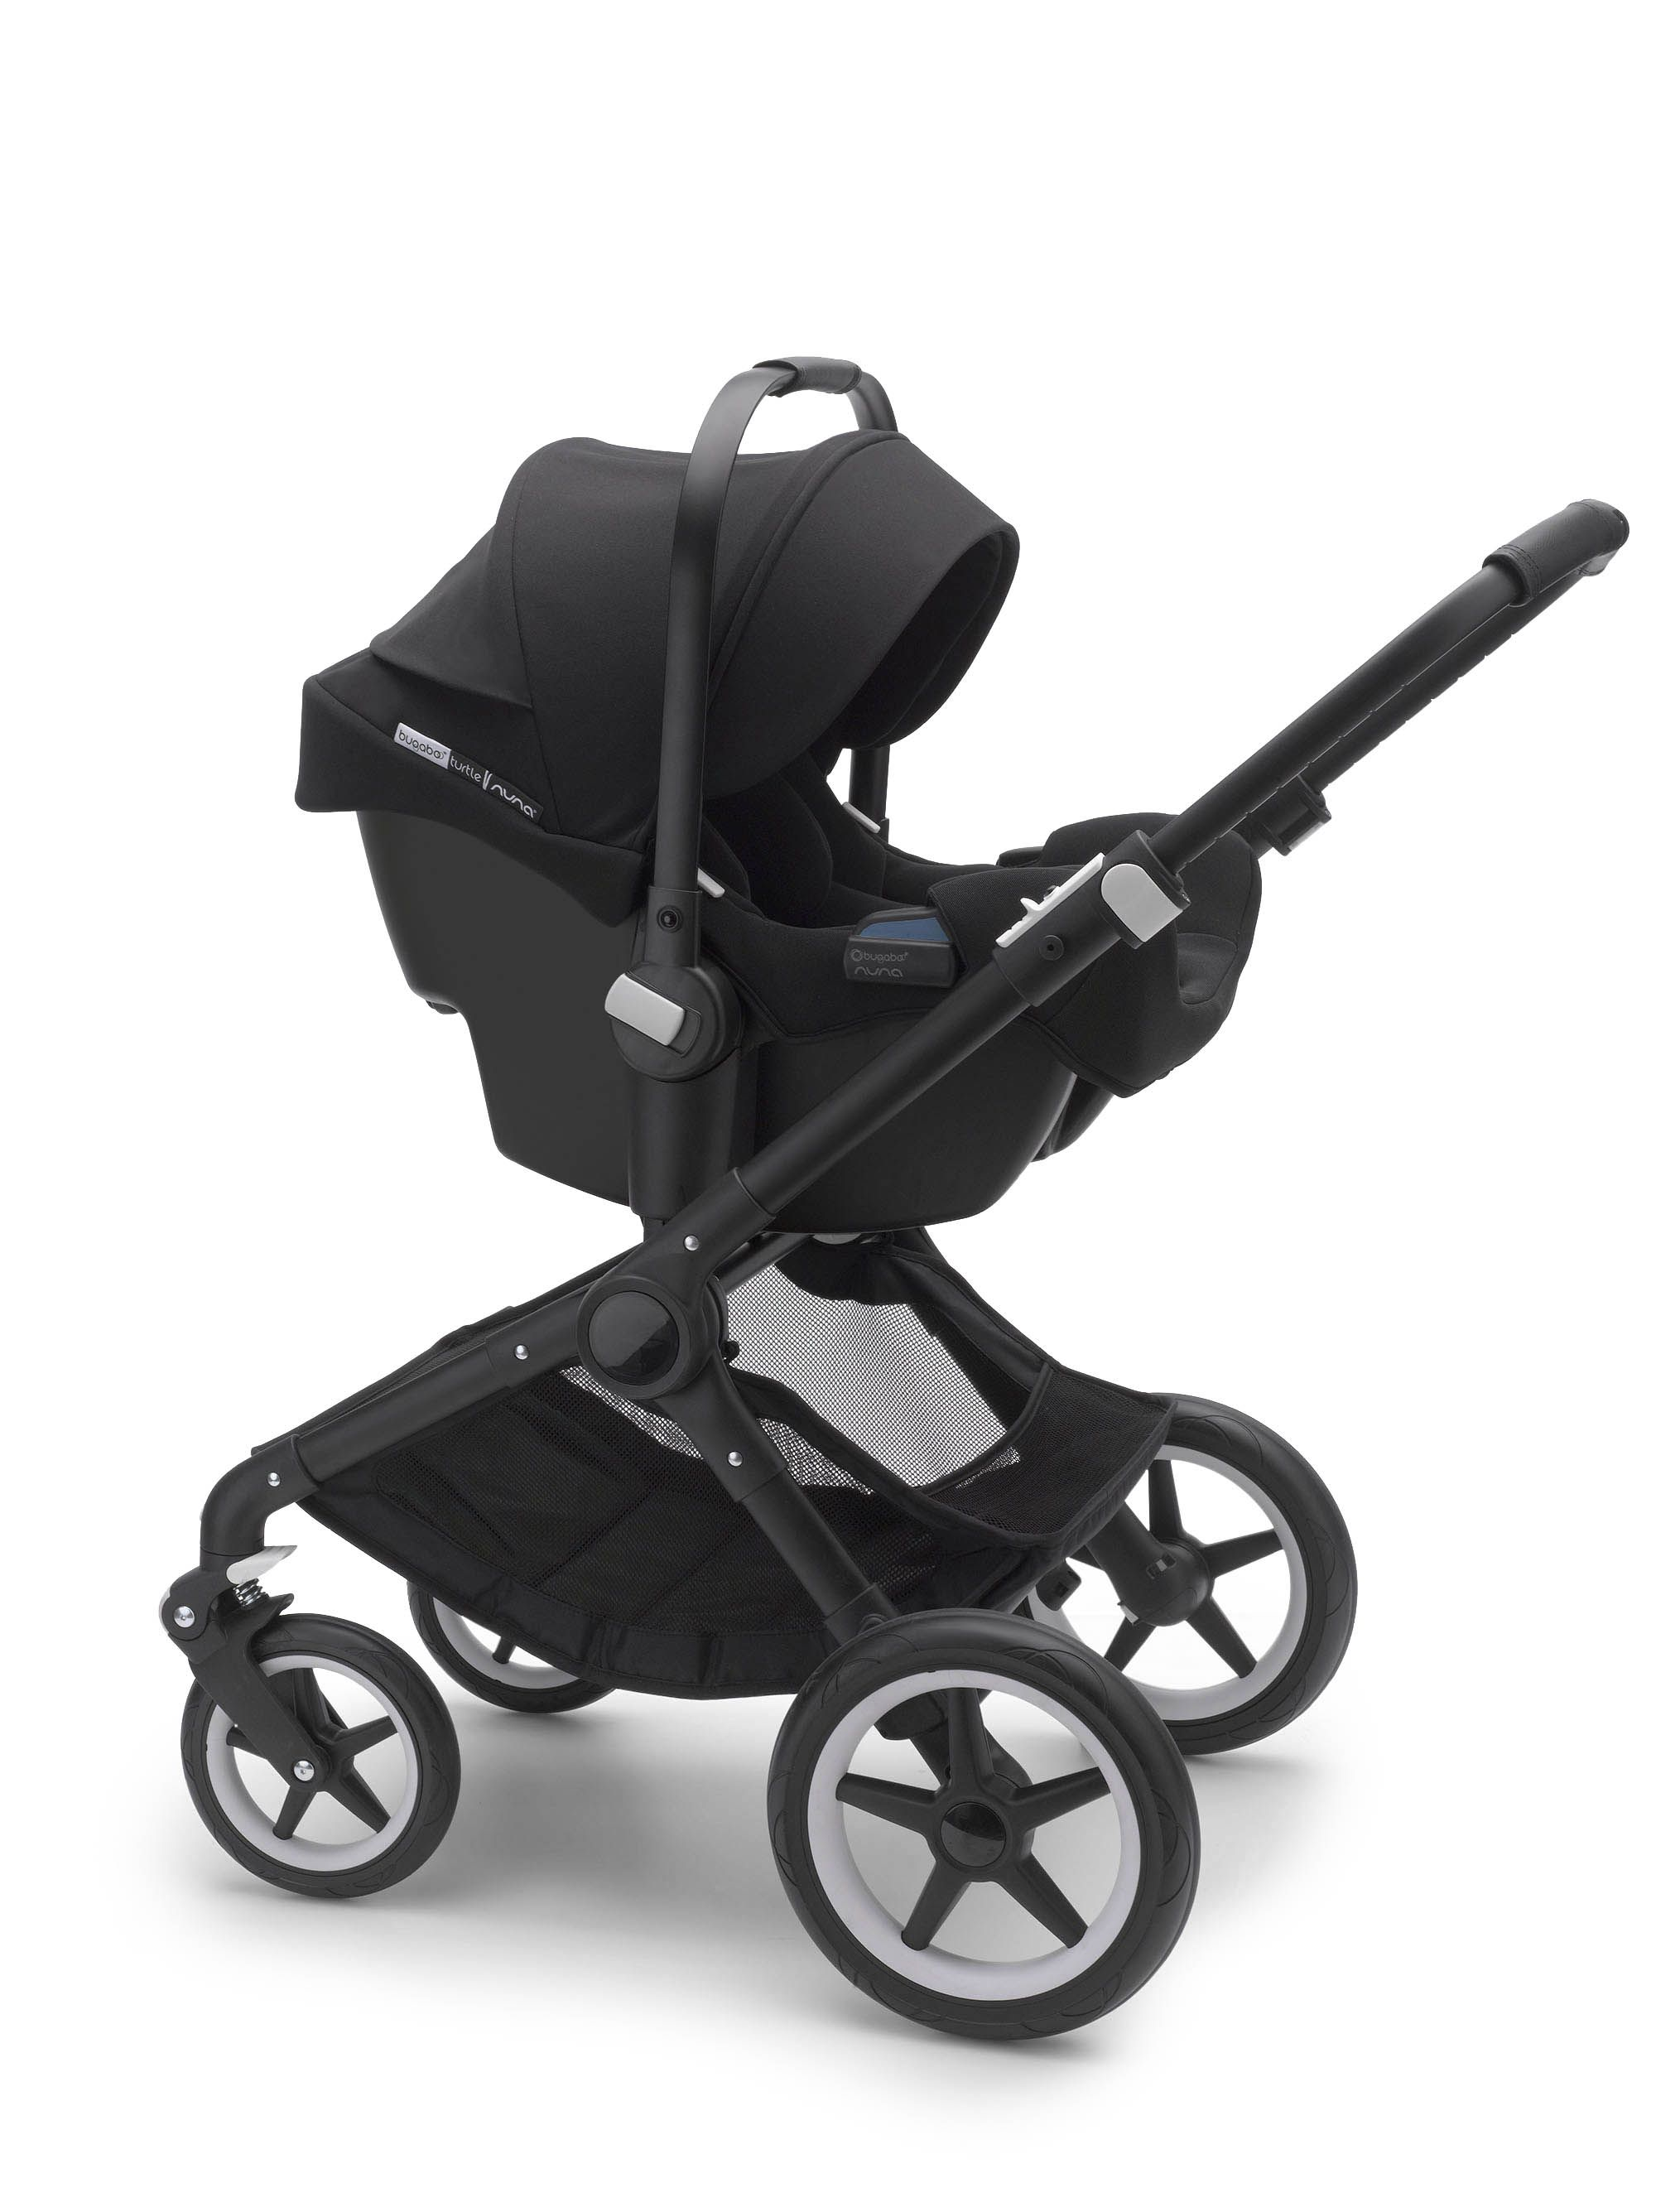 Poussette Buggy Nuna Integrated Adapters On The Bugaboo Turtle By Nuna Car Seat